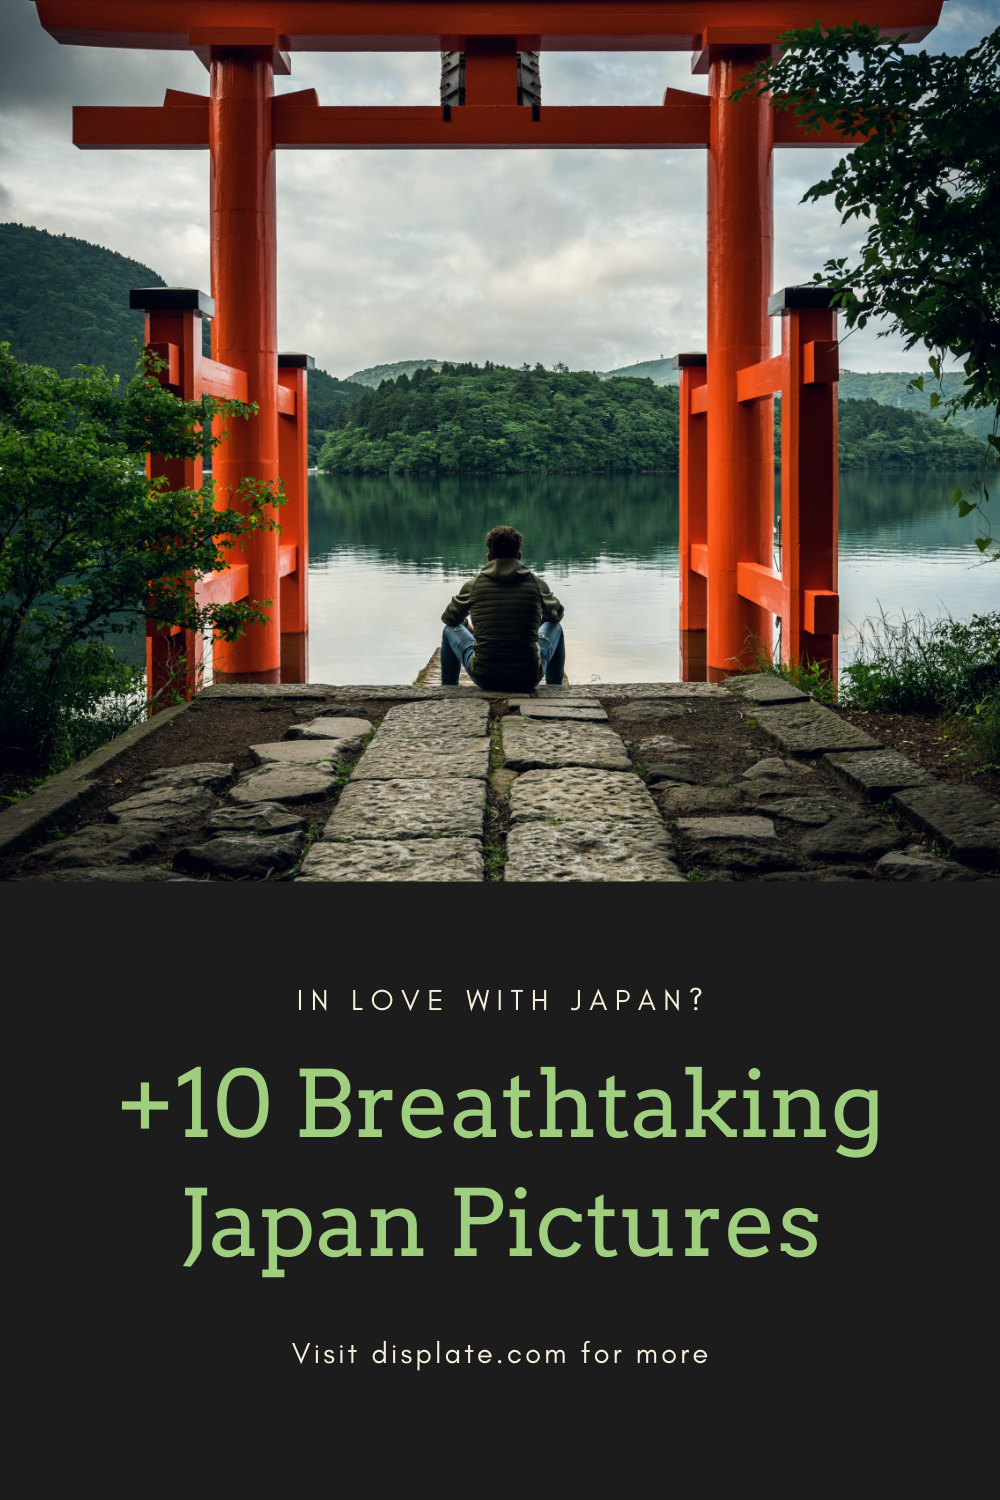 +20 Stunning Japan Pictures | Displate thumbnail